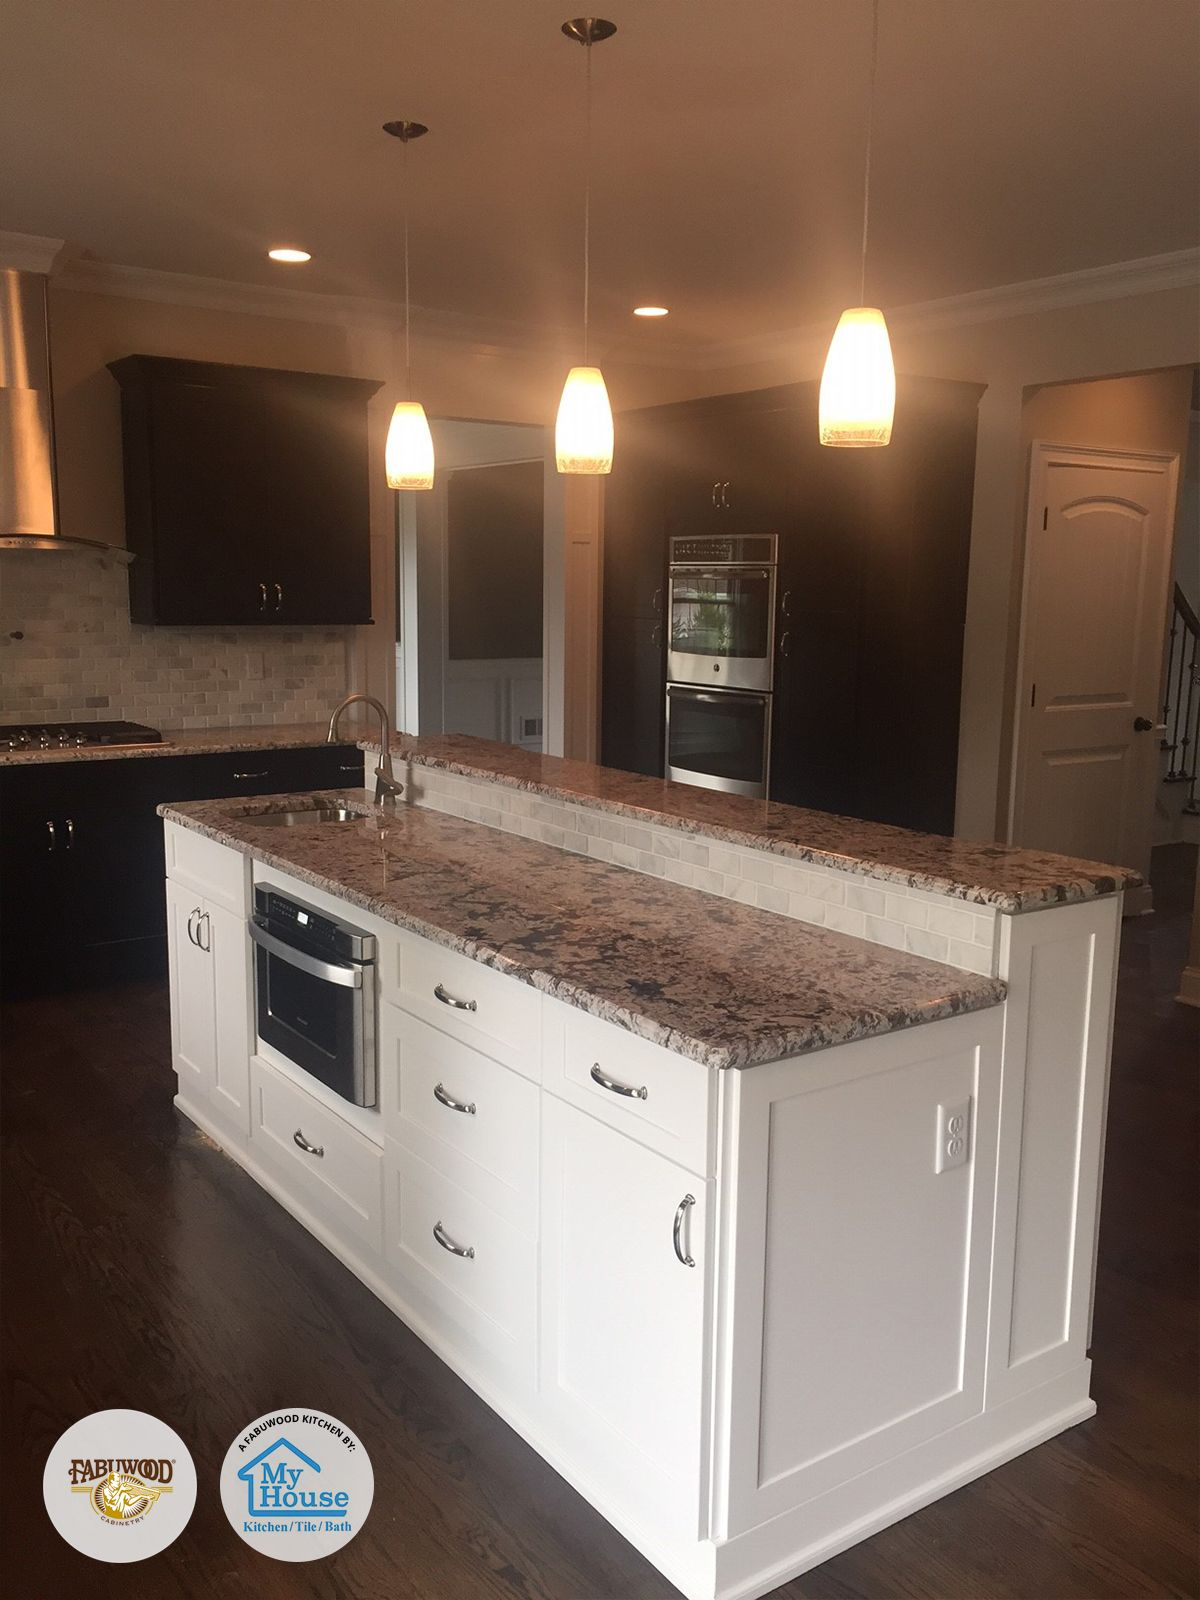 Wonderful Fabuwood Galaxy Espresso And Frost #kitchen Built By My House Kitchen Tile  And Bath Located In Union, NJ Designer: Bora